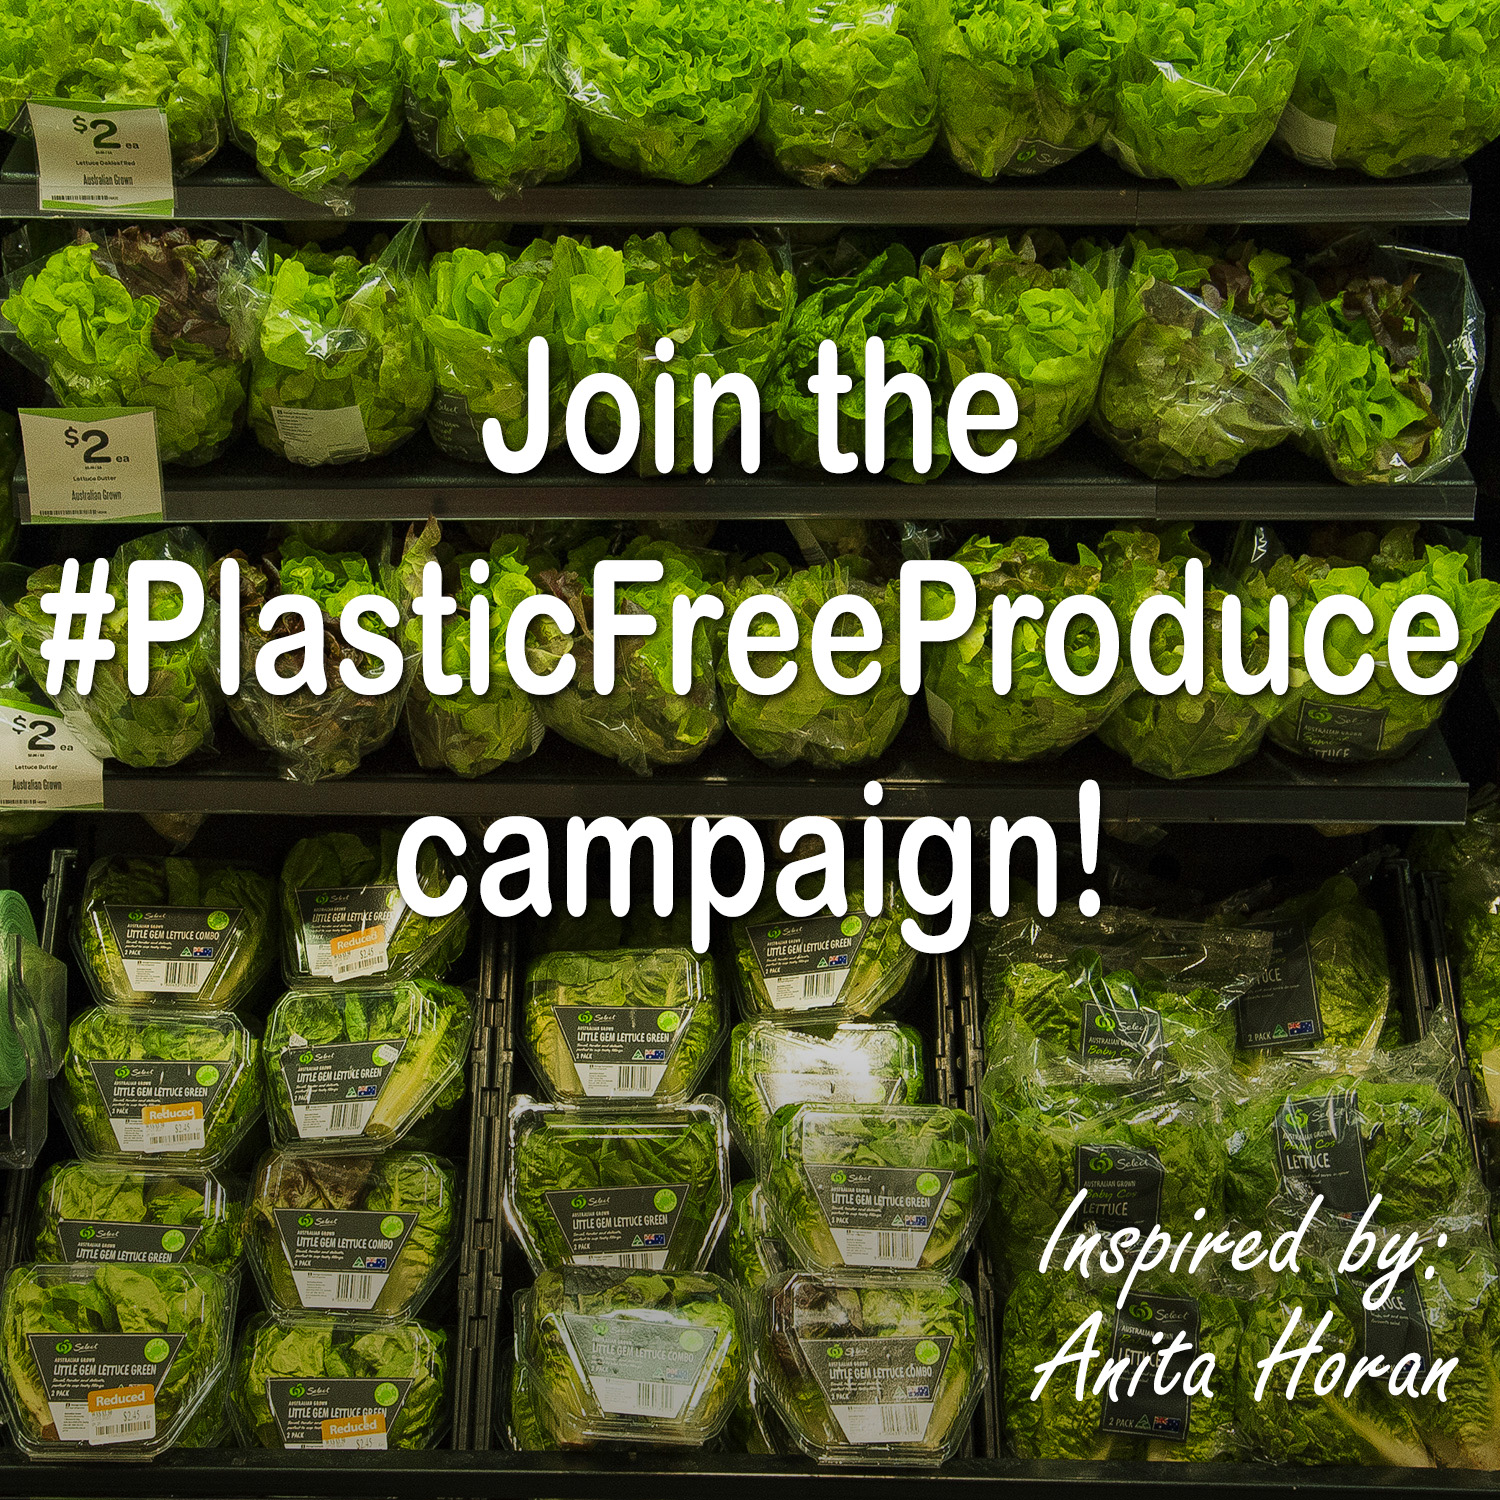 Ask for plastic free produce.